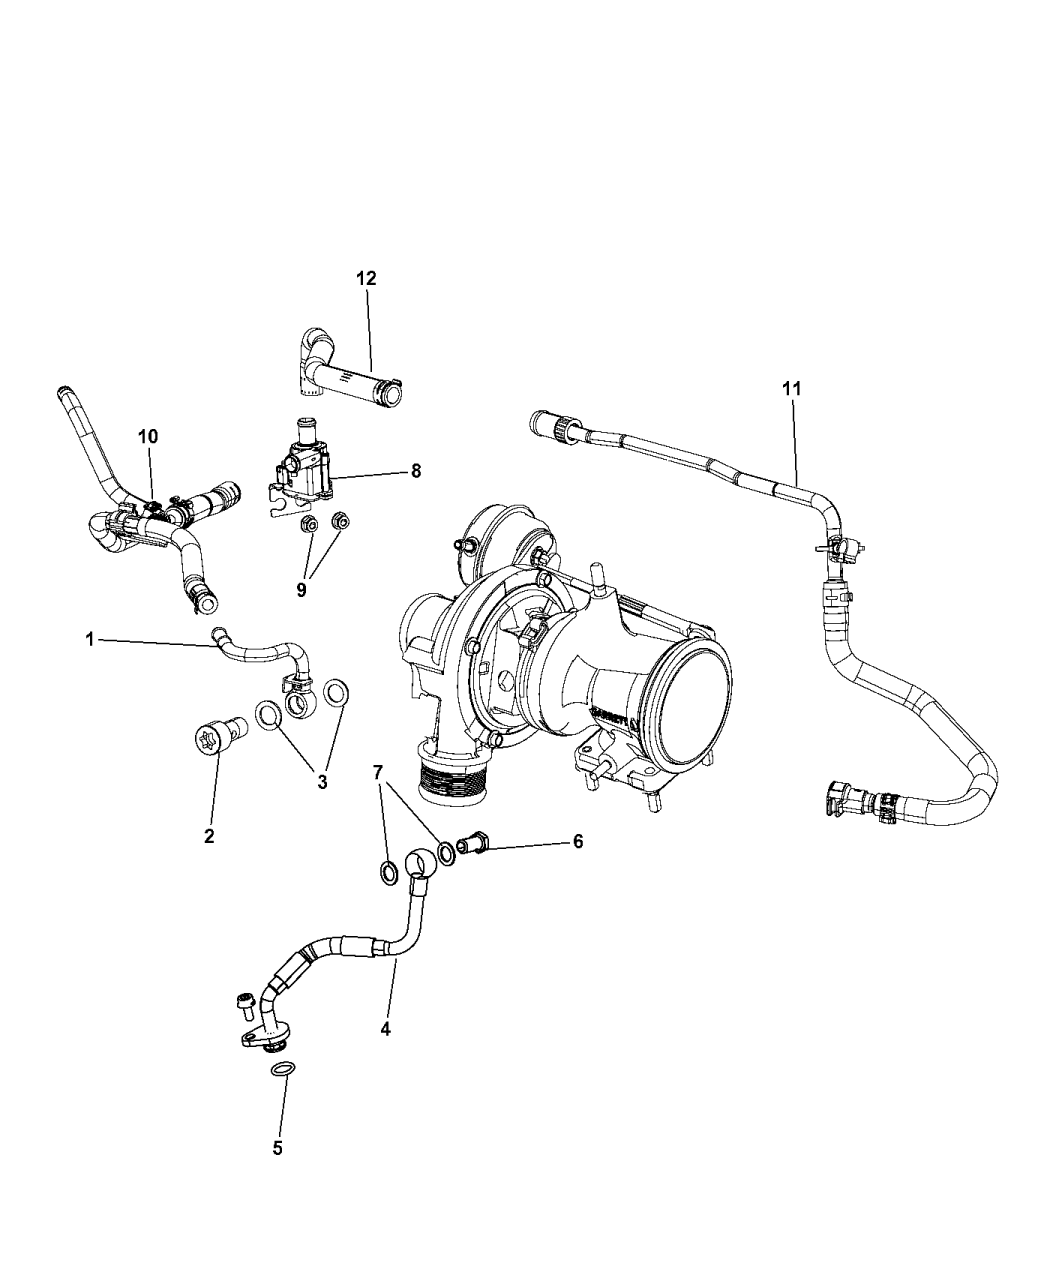 2013 Dodge Dart Turbocharger Cooling System